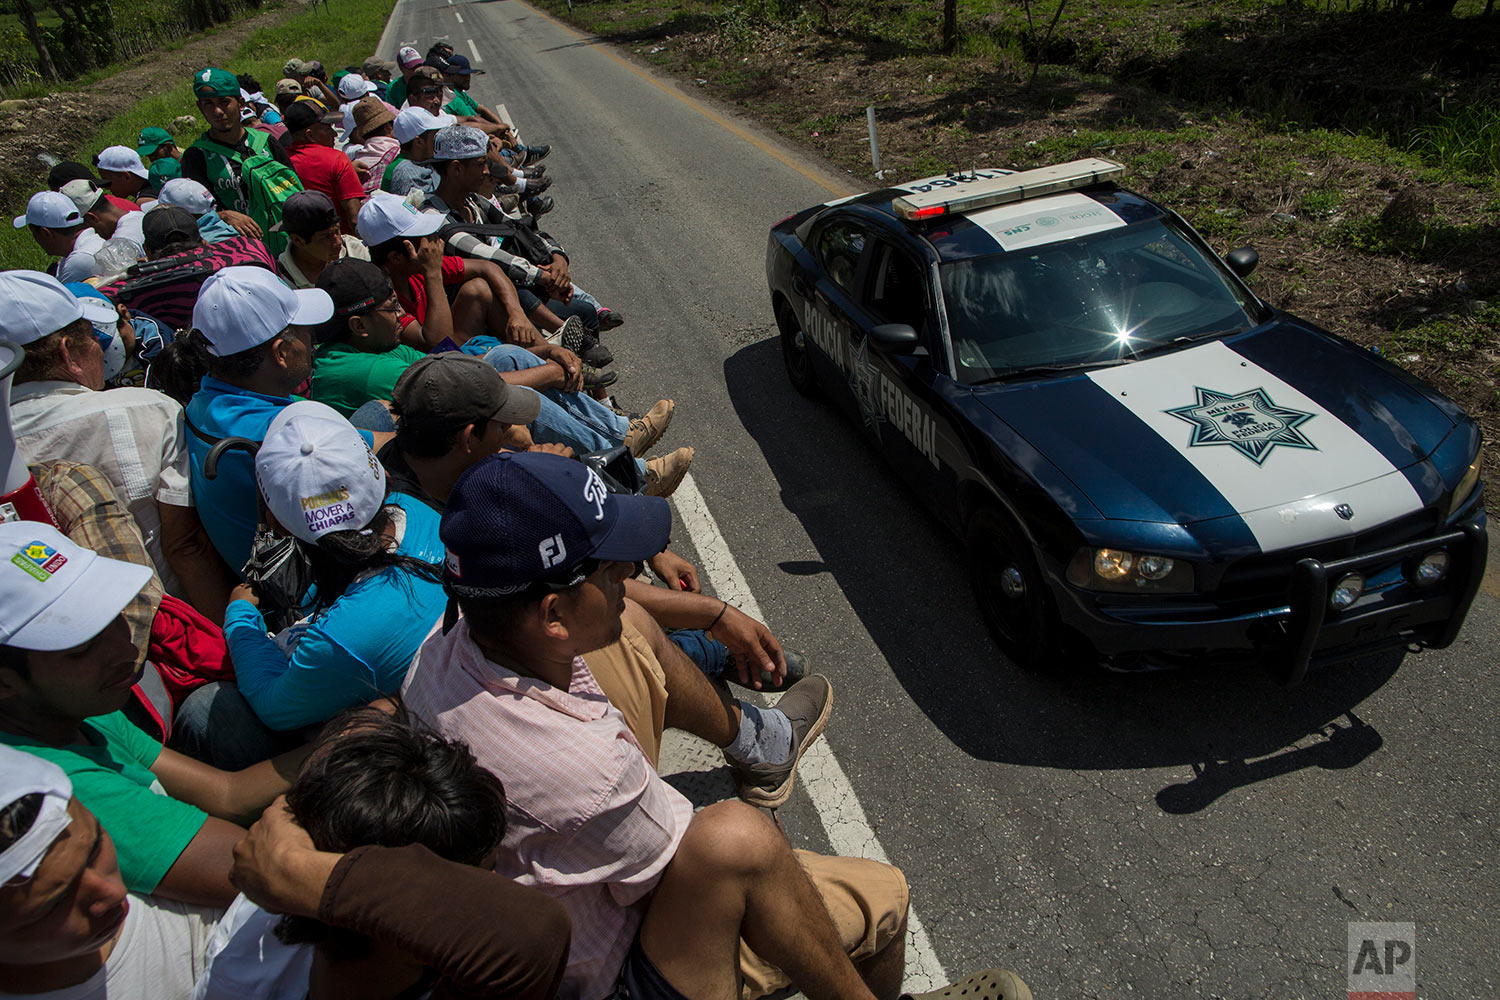 A Mexican police car passes Central American migrants traveling with a caravan to the U.S. as they get a free ride on a tuck bed, as they approach Mapastepec, Mexico, Wednesday, Oct. 24, 2018. (AP Photo/Rodrigo Abd)